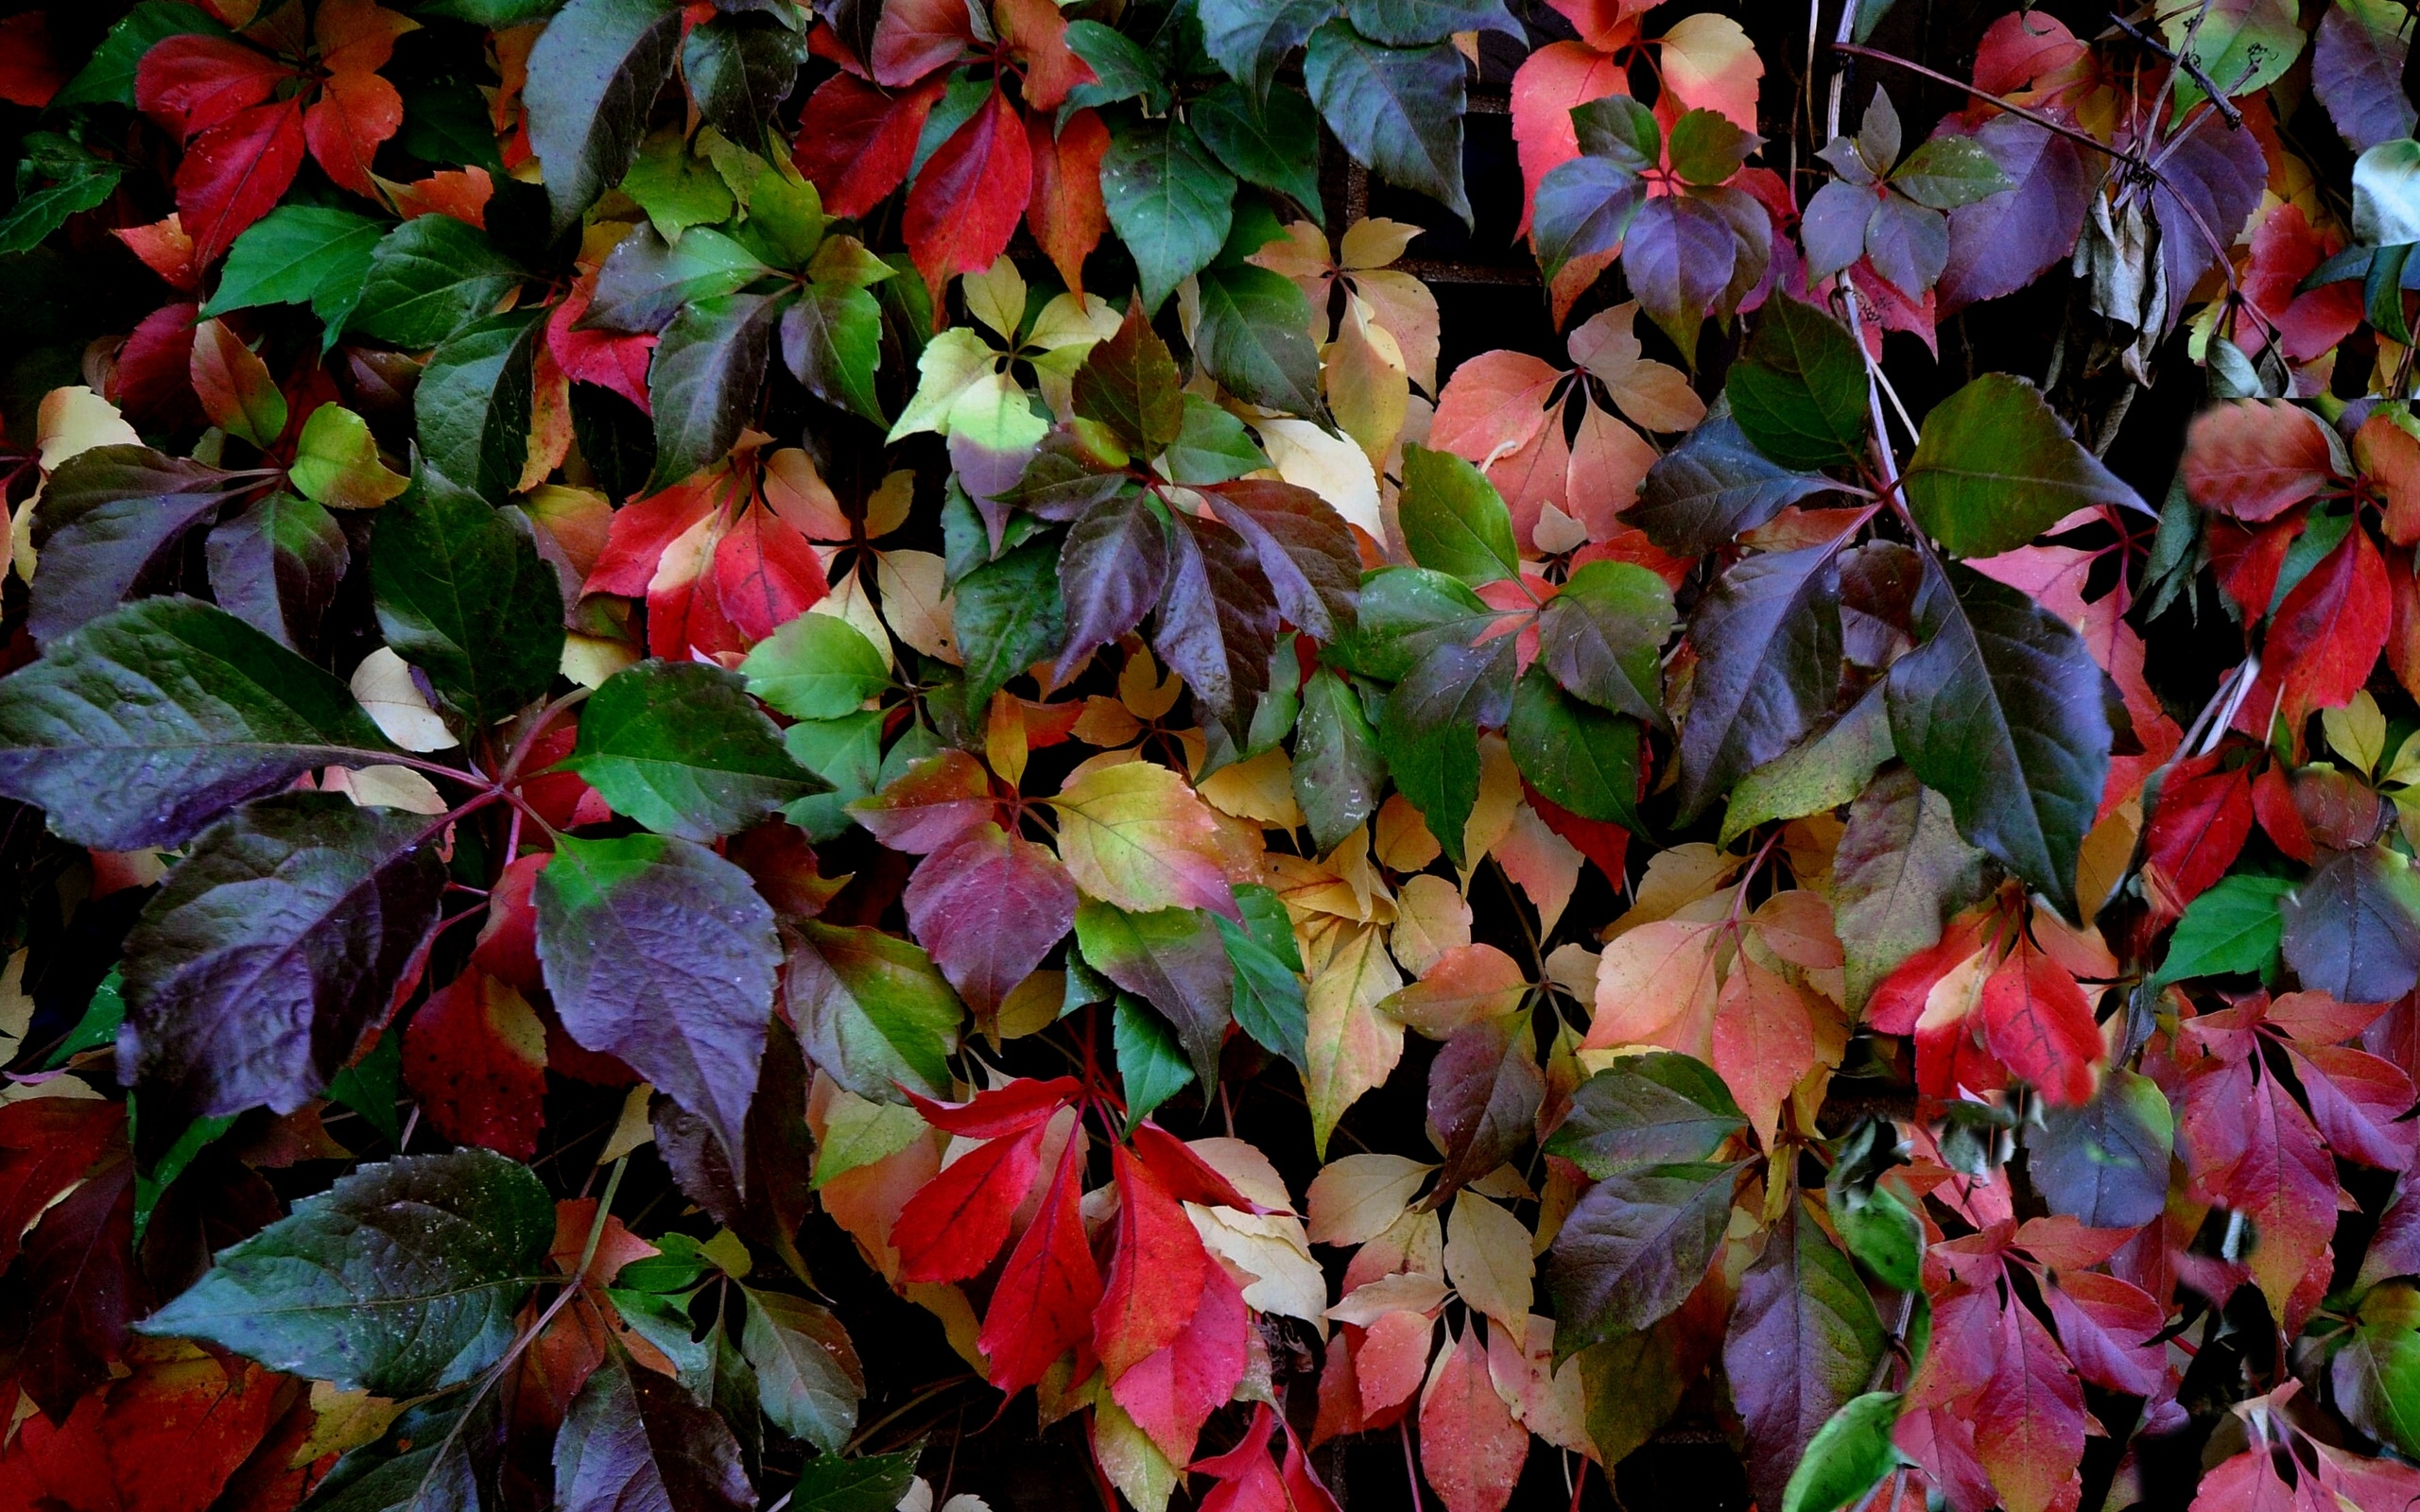 Frosty Fall Leaves Wallpaper Leaves Colorful Autumn Wallpaper 2560x1600 162844